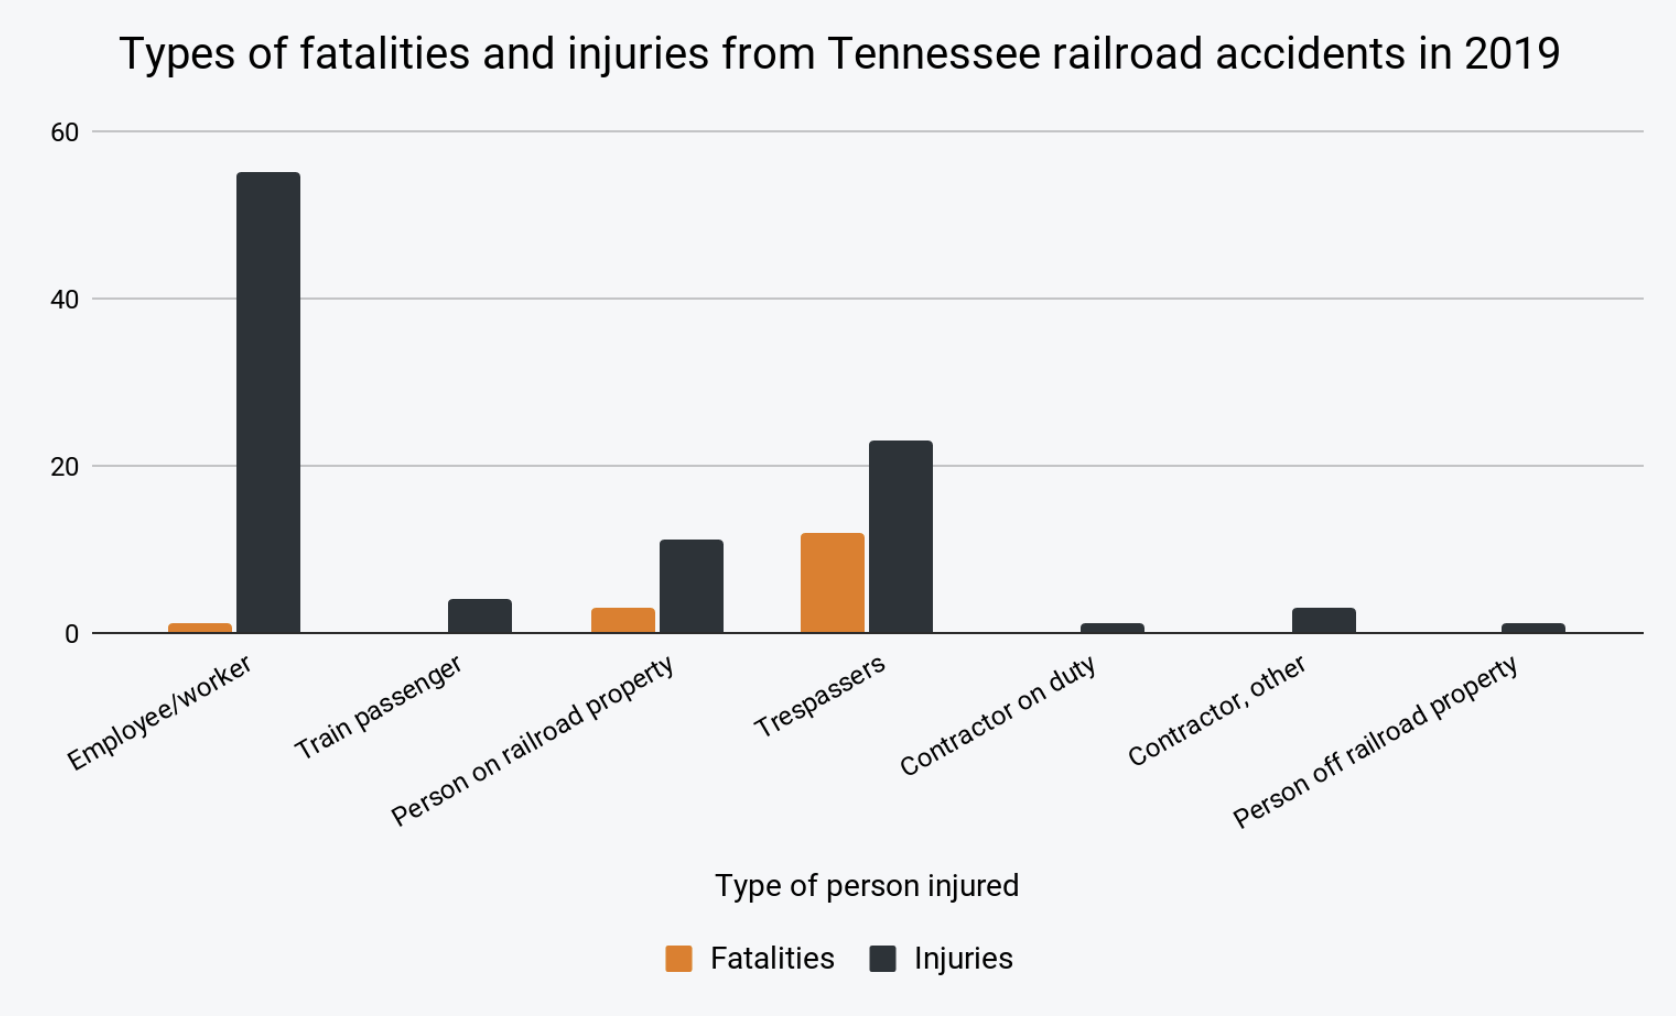 Train accident injuries and fatalities